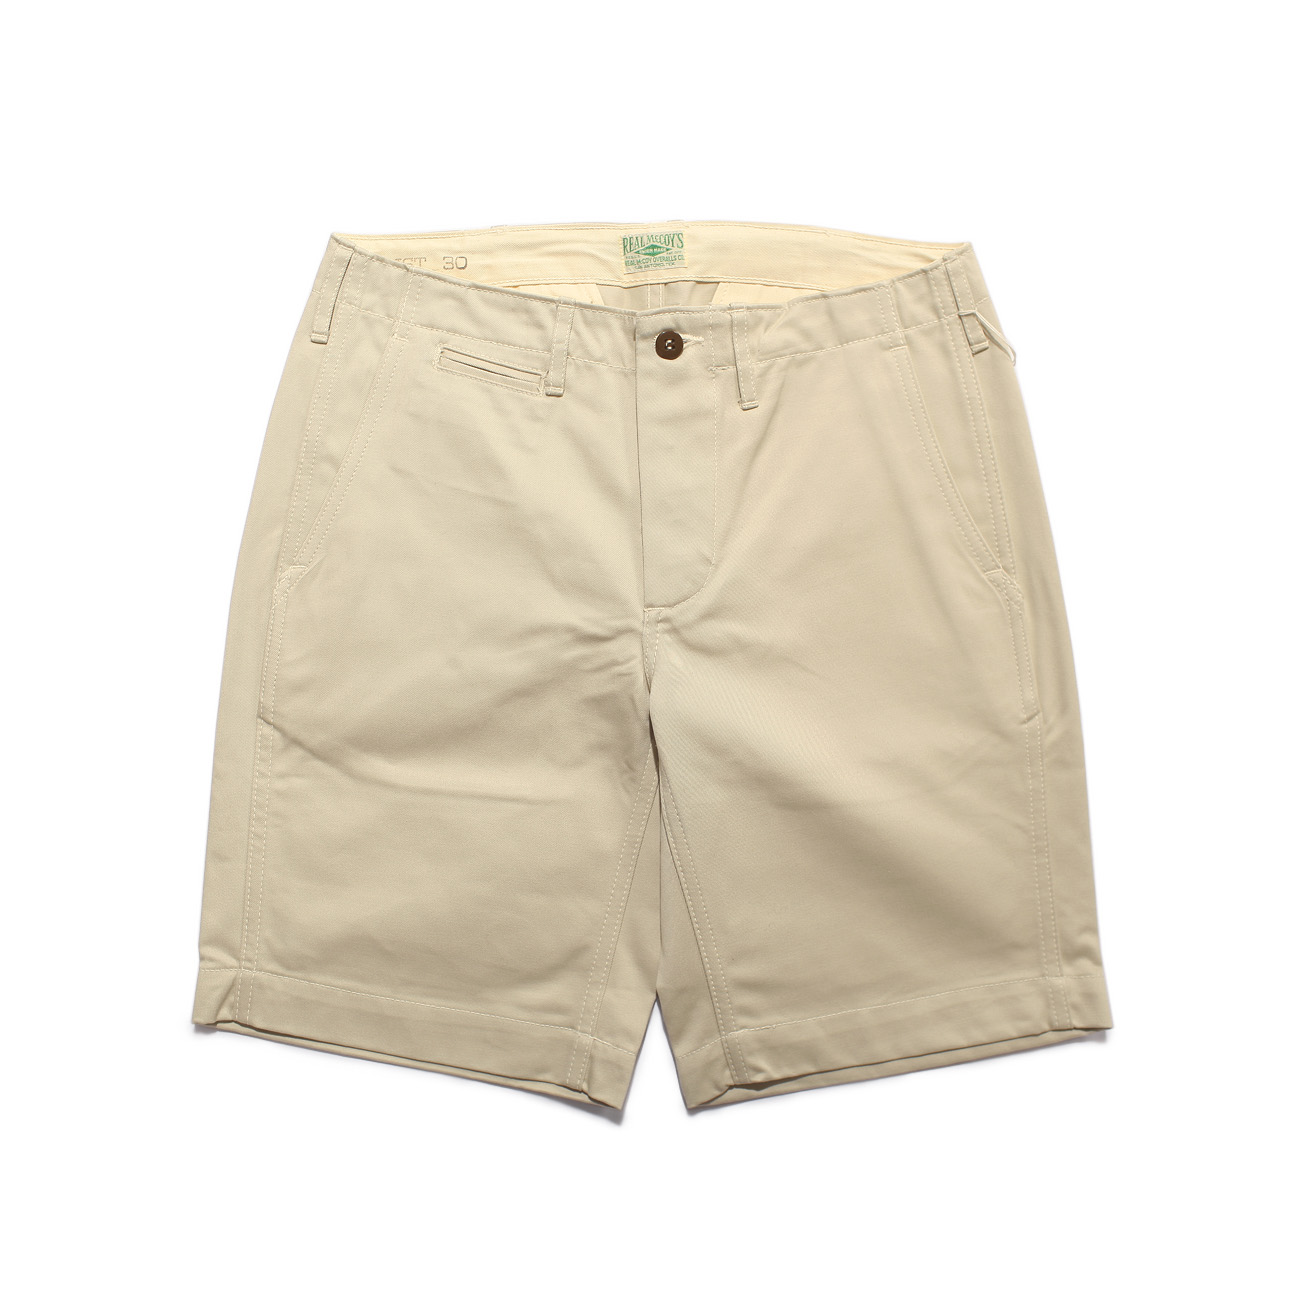 Cotton Shorts / Blue Seal